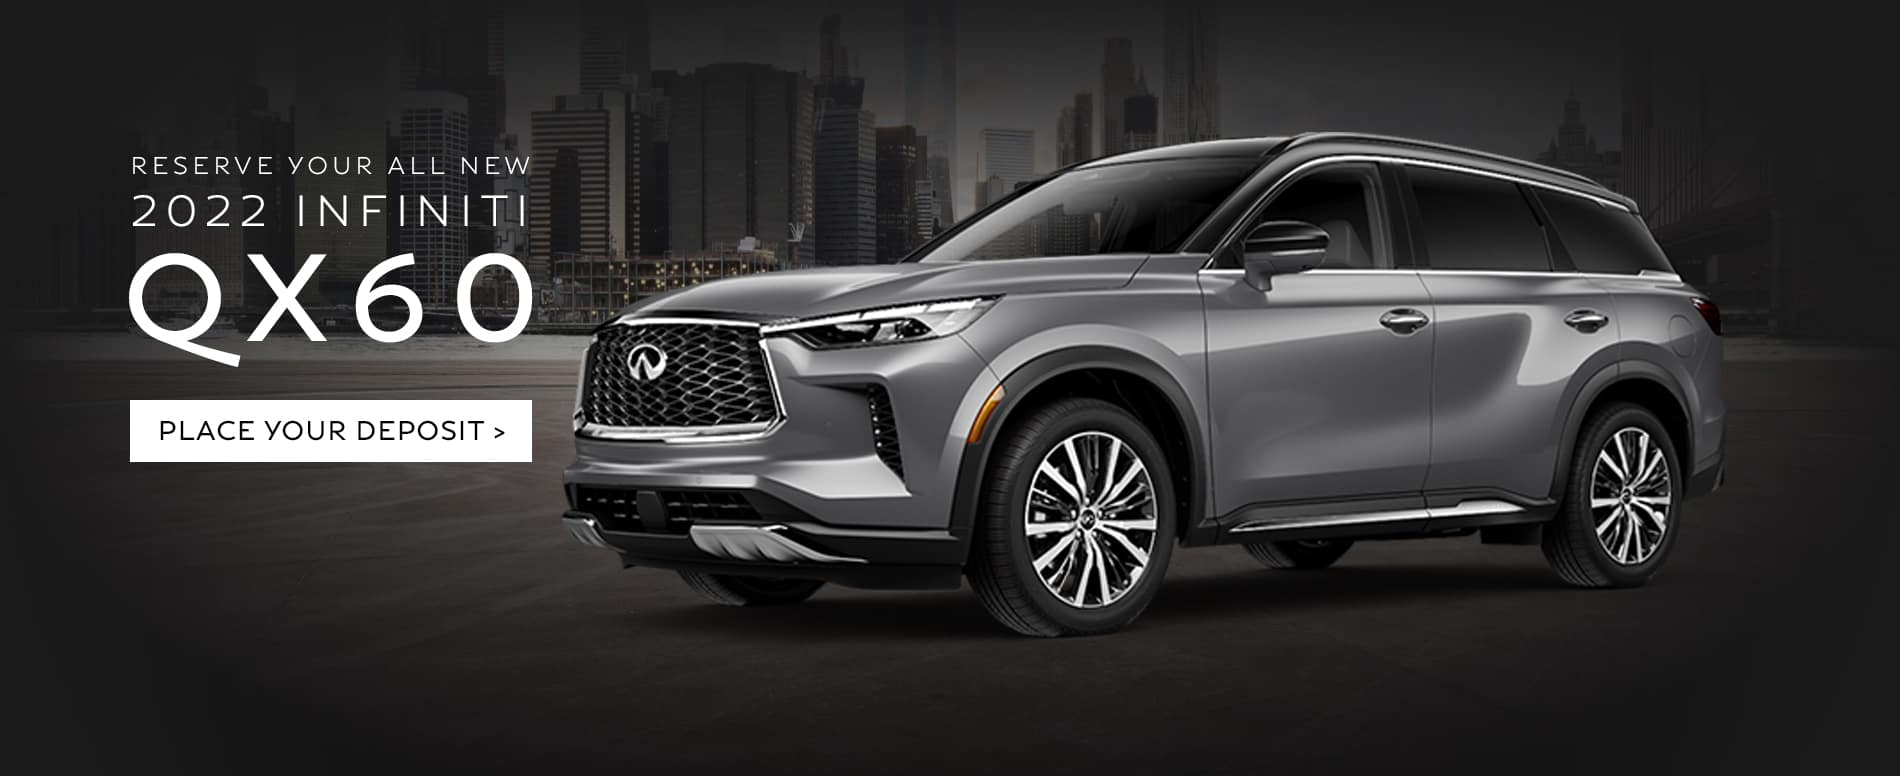 Reserve your all-new 2022 INFINITI QX60 today – arriving autumn 2021.